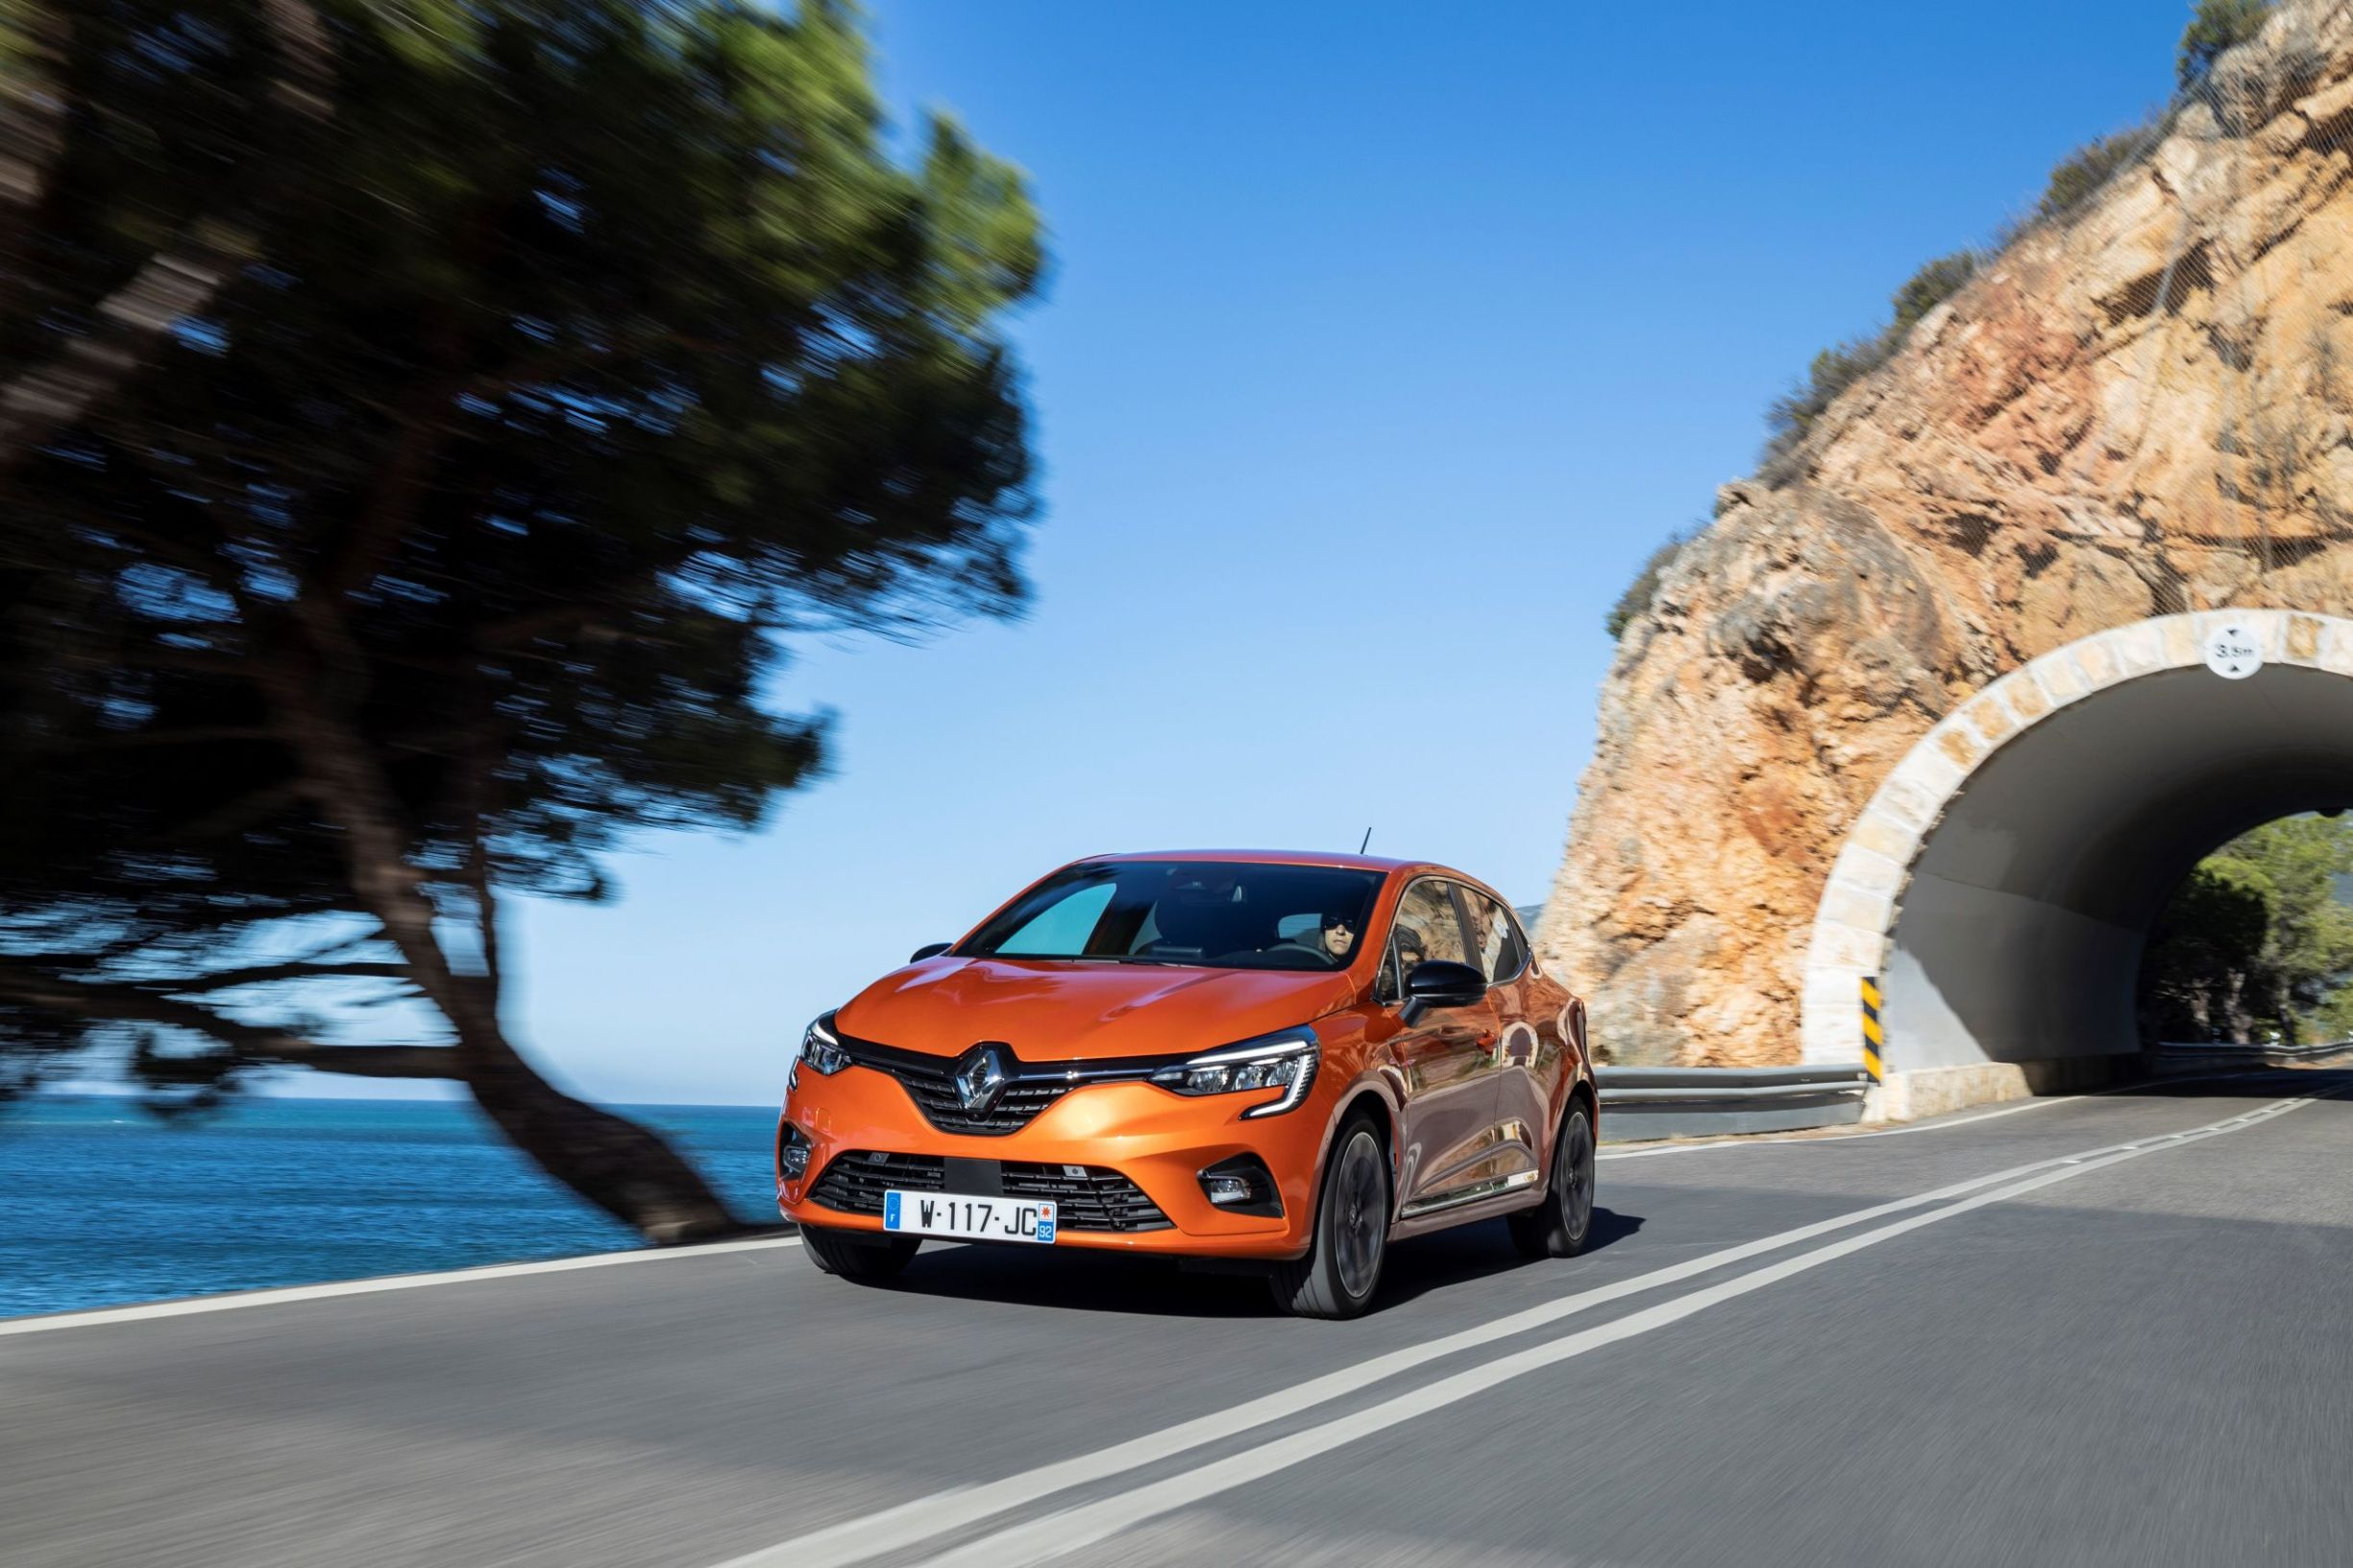 21227143_2019_-_New_Renault_CLIO_test_drive_in_Portugal_1